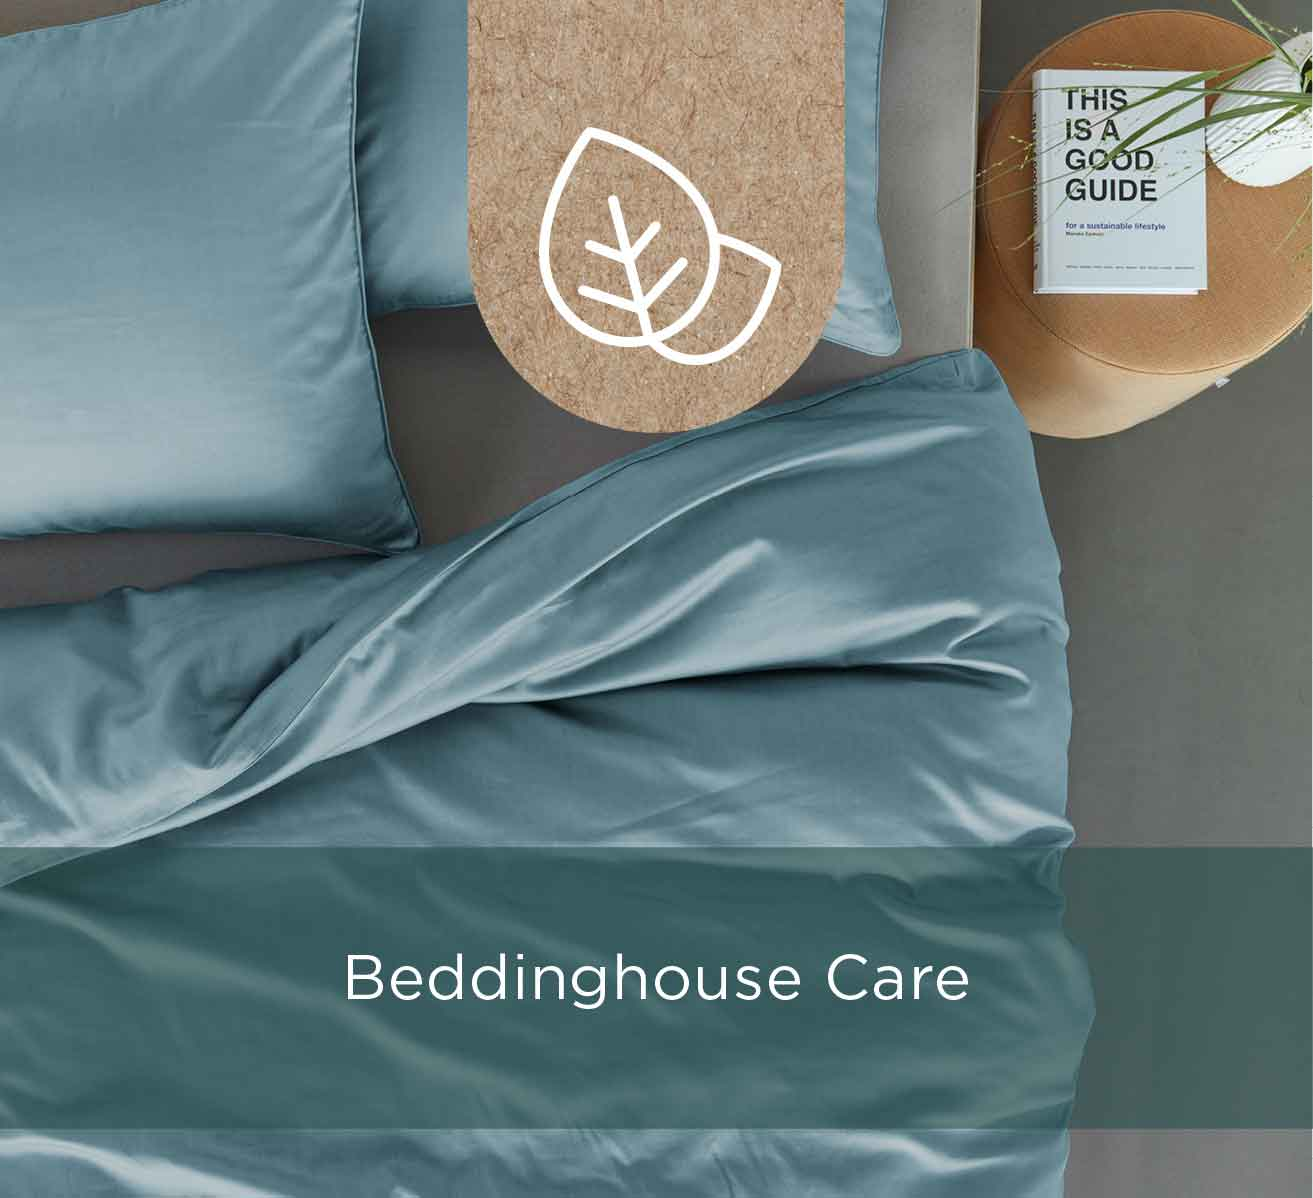 Beddinghouse Care